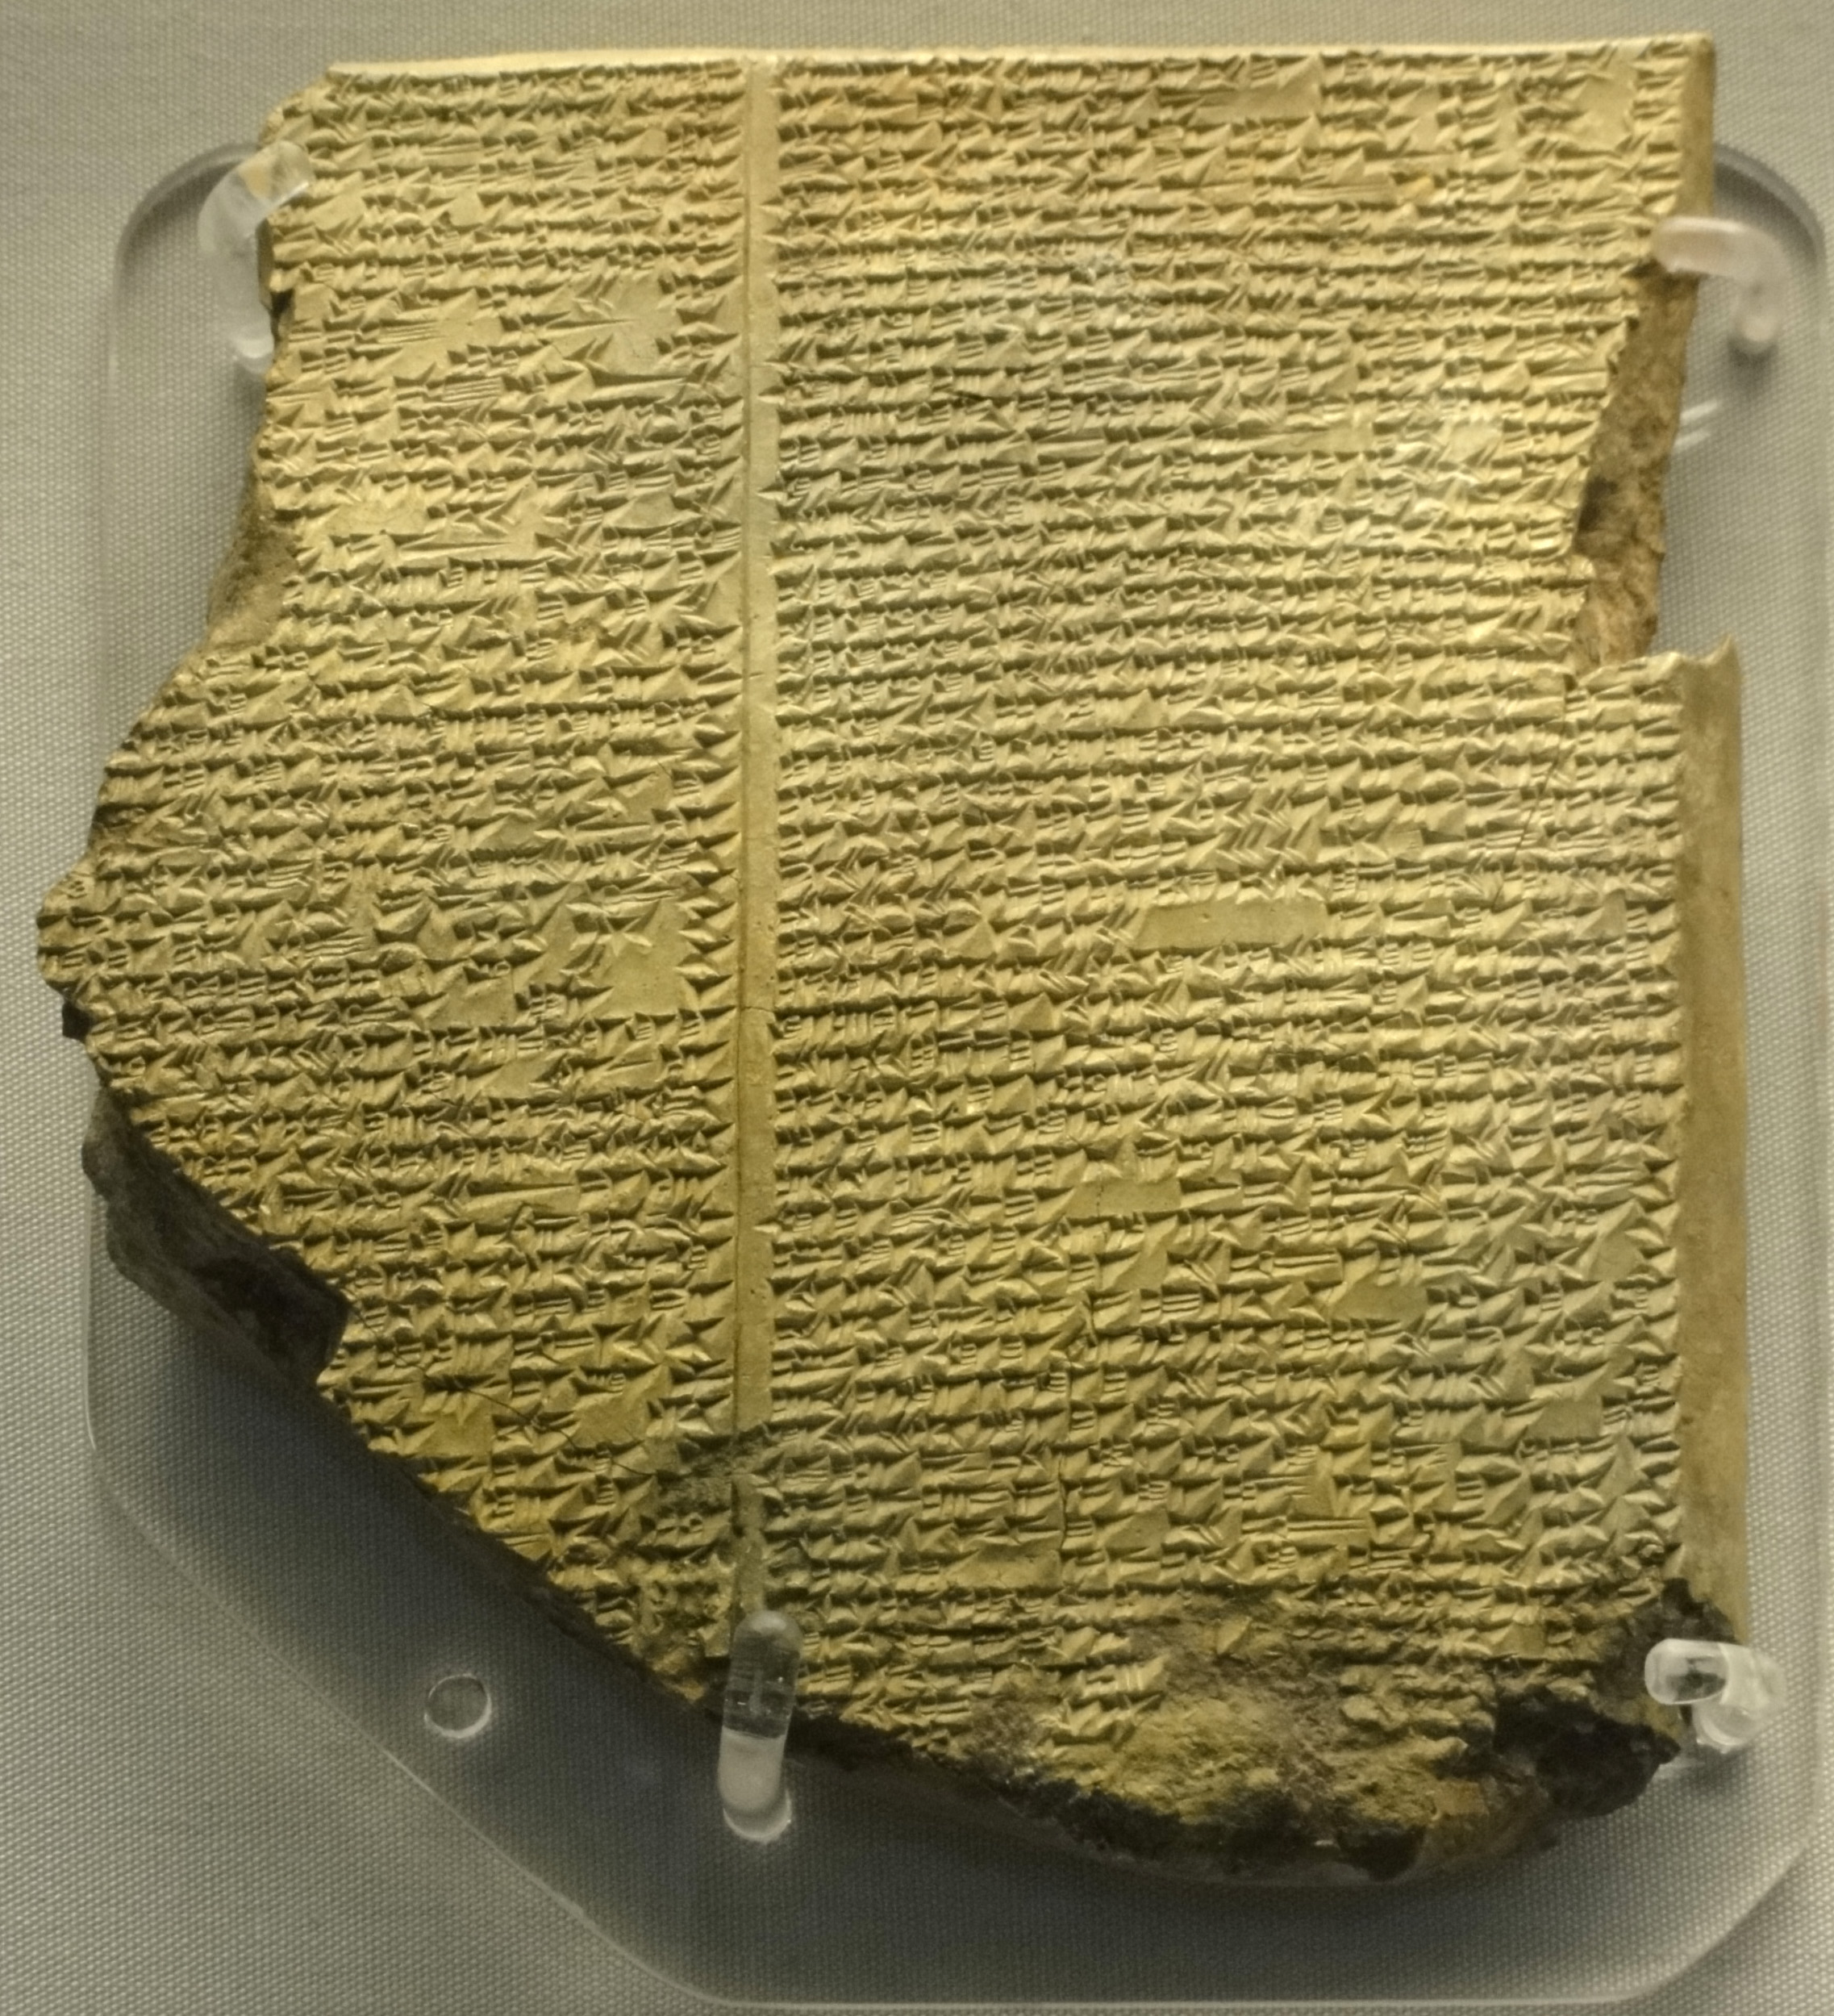 external image Library_of_Ashurbanipal_The_Flood_Tablet.jpg